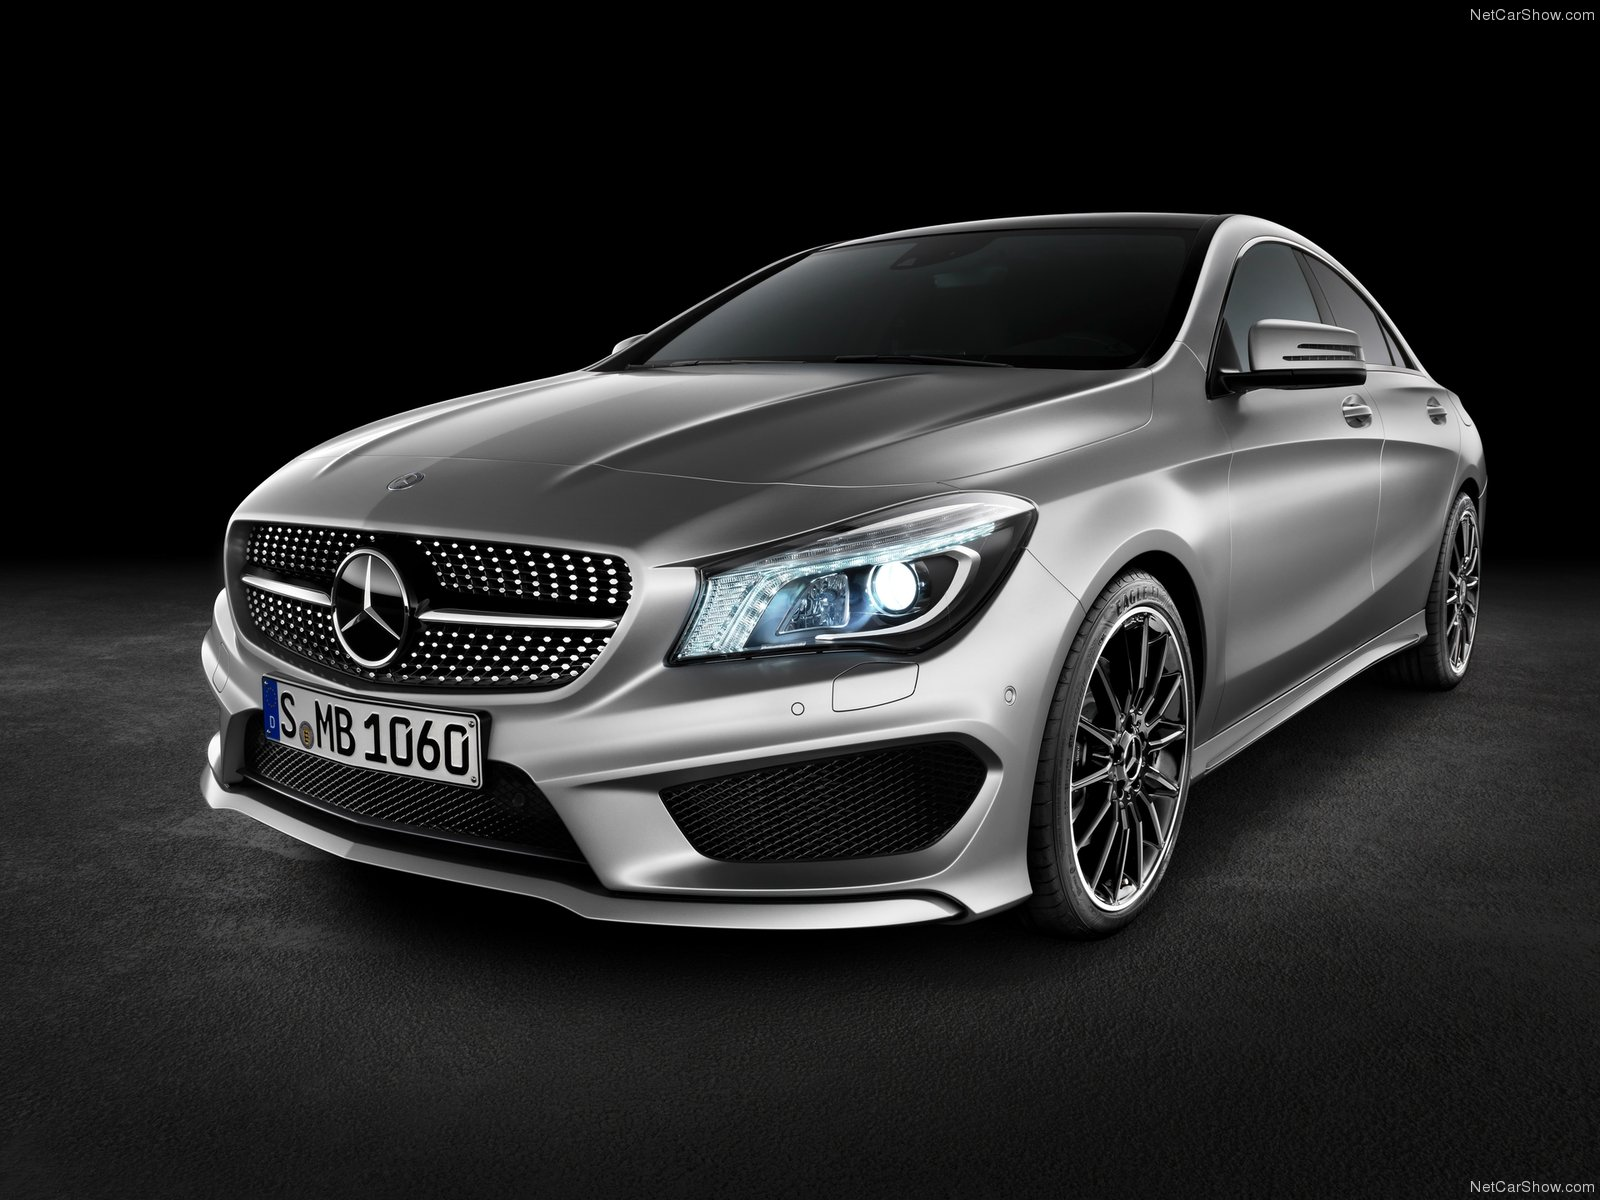 3dtuning of mercedes cla class 4 door coupe 2014 unique on line car configurator. Black Bedroom Furniture Sets. Home Design Ideas